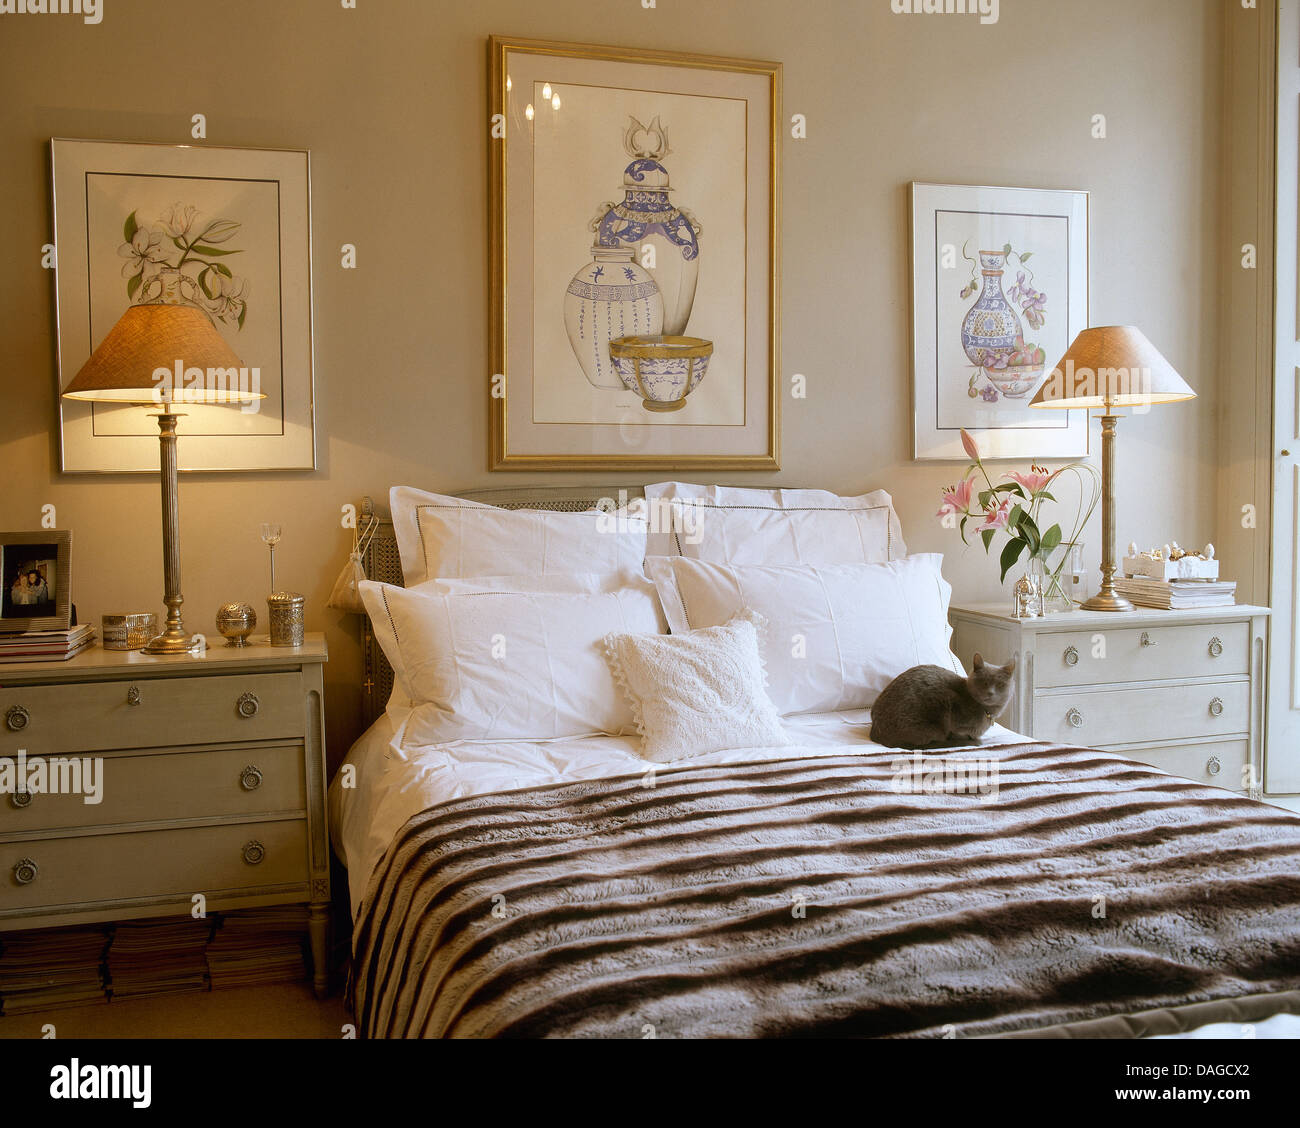 cat bedroom. Cat sitting on bed with white pillows and faux fur throw in bedroom  lit bedside lamps cabinets either side of